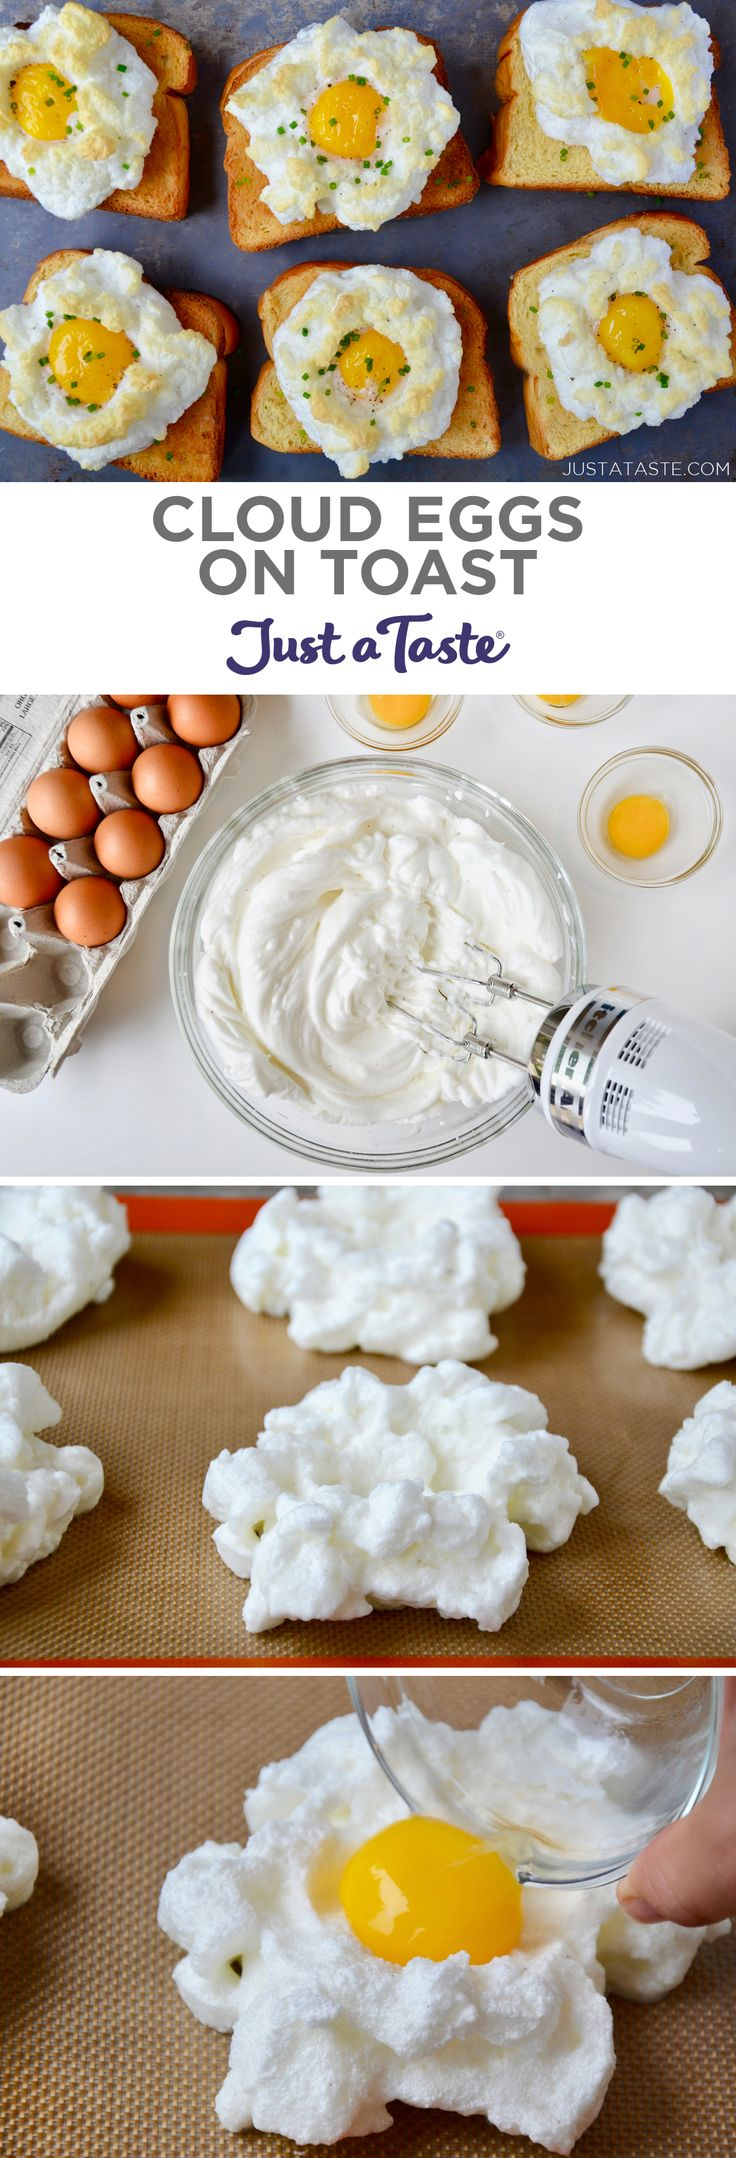 Cloud Eggs on Toast recipe from justataste.com #cloudeggs